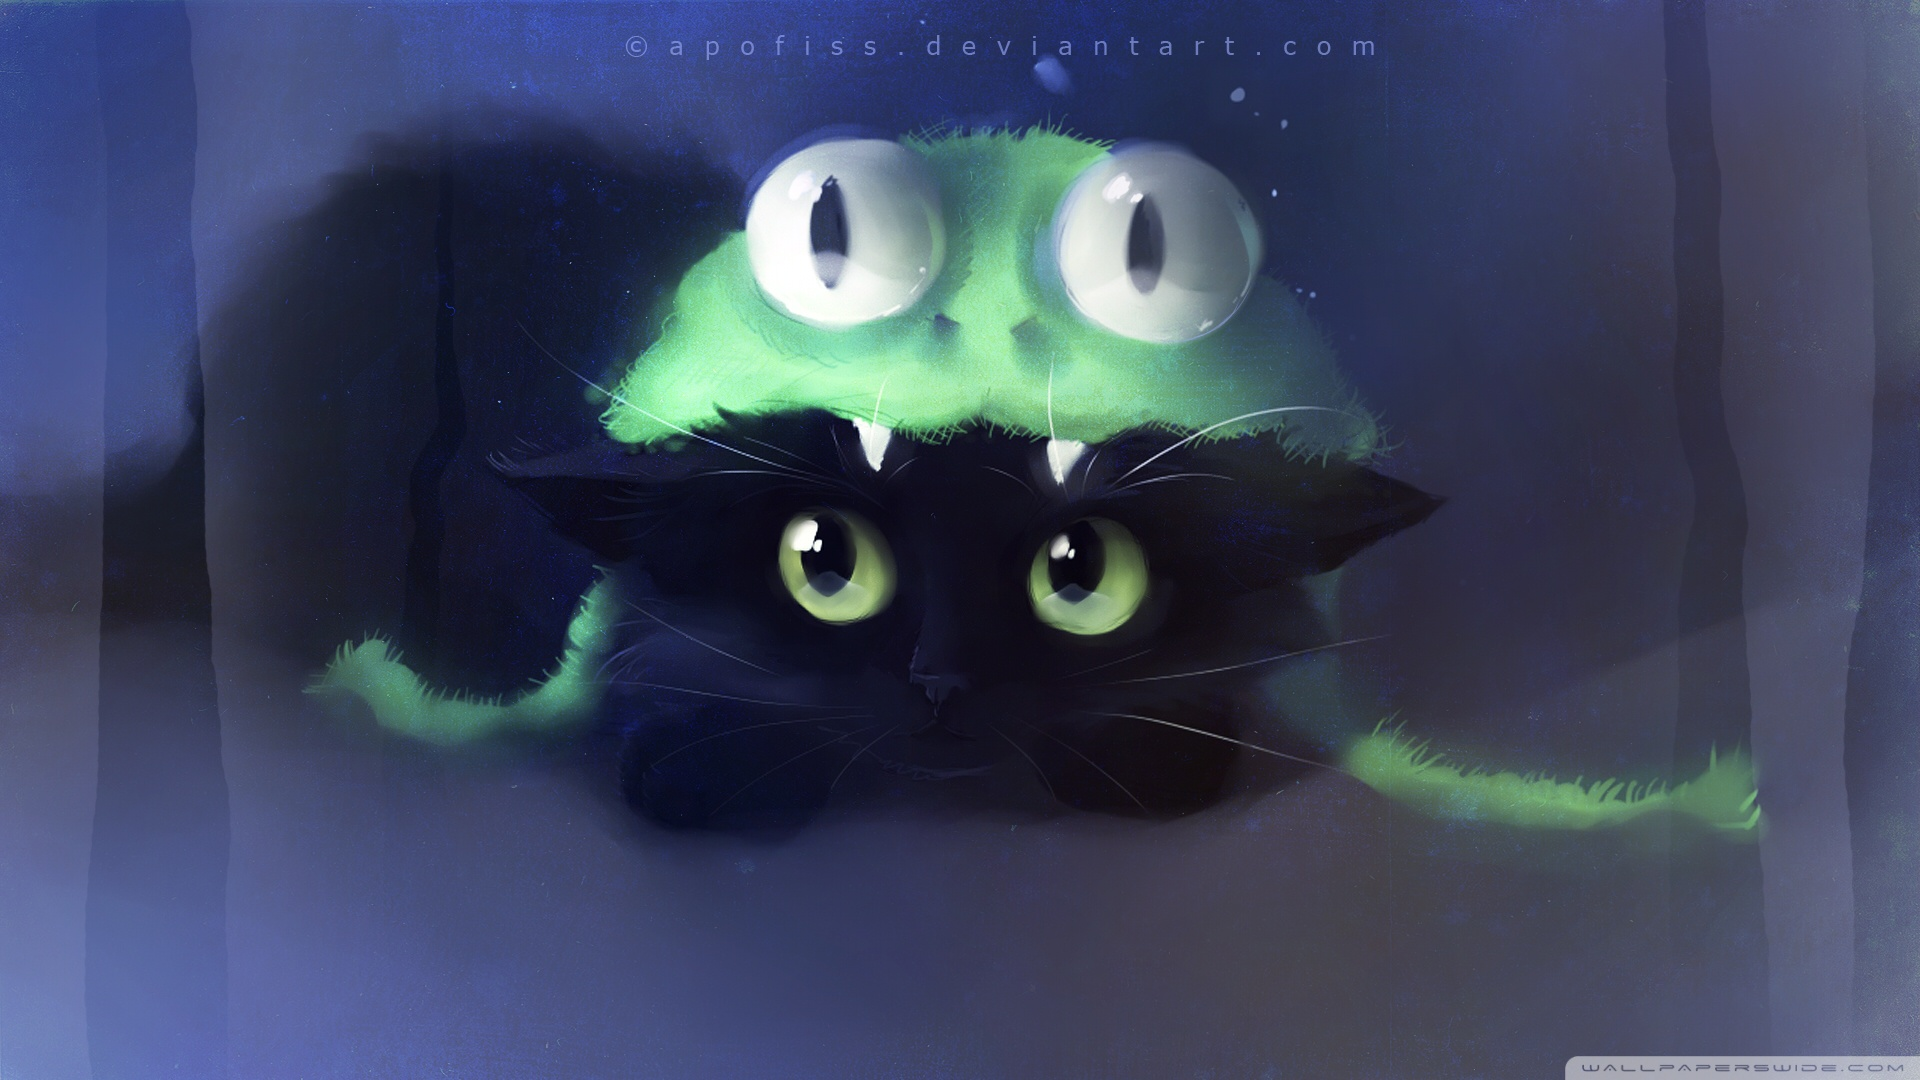 Frog Cat Painting Wallpaper 1920x1080 Frog Cat Painting 1920x1080